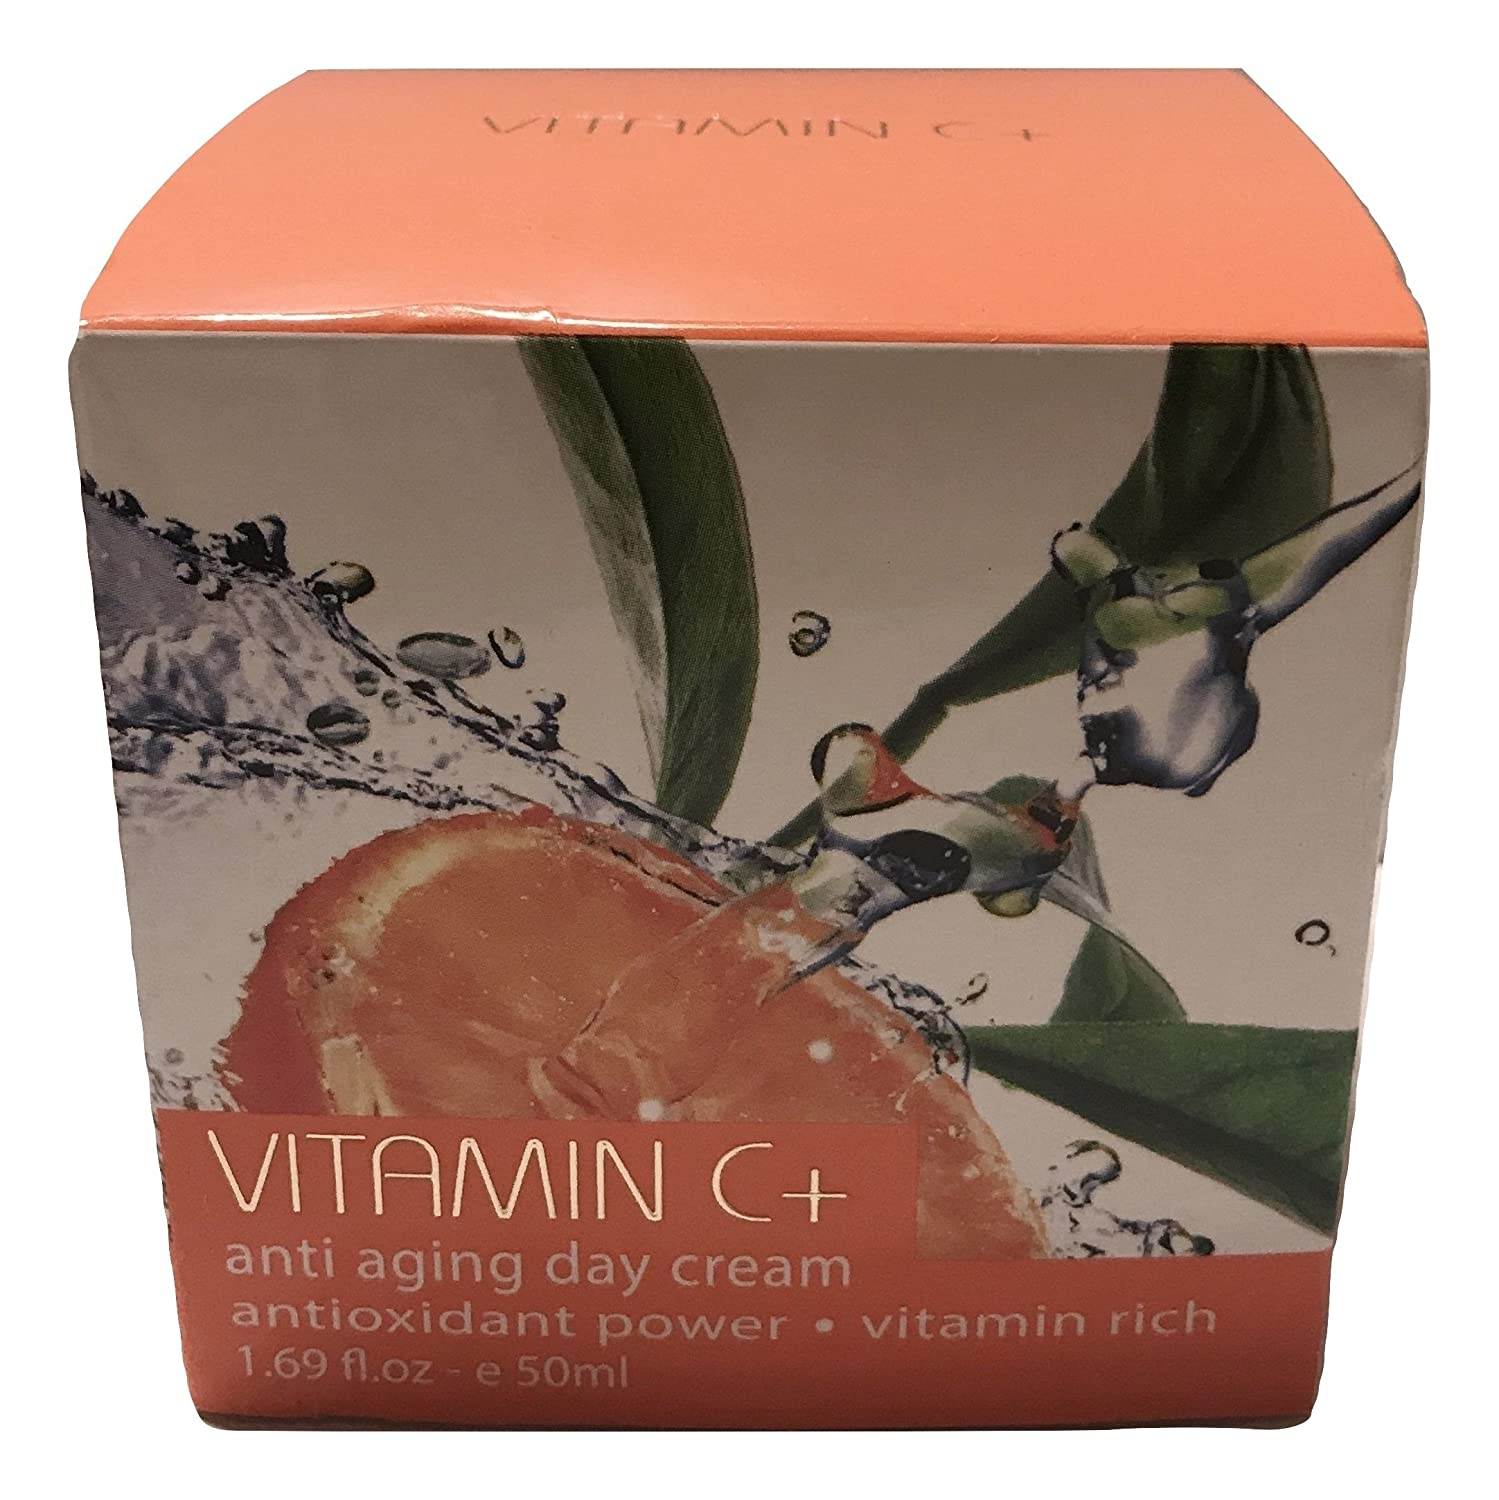 Crystalline Vitamin C+ Anti Aging Day Cream, 1.69 fl. oz.